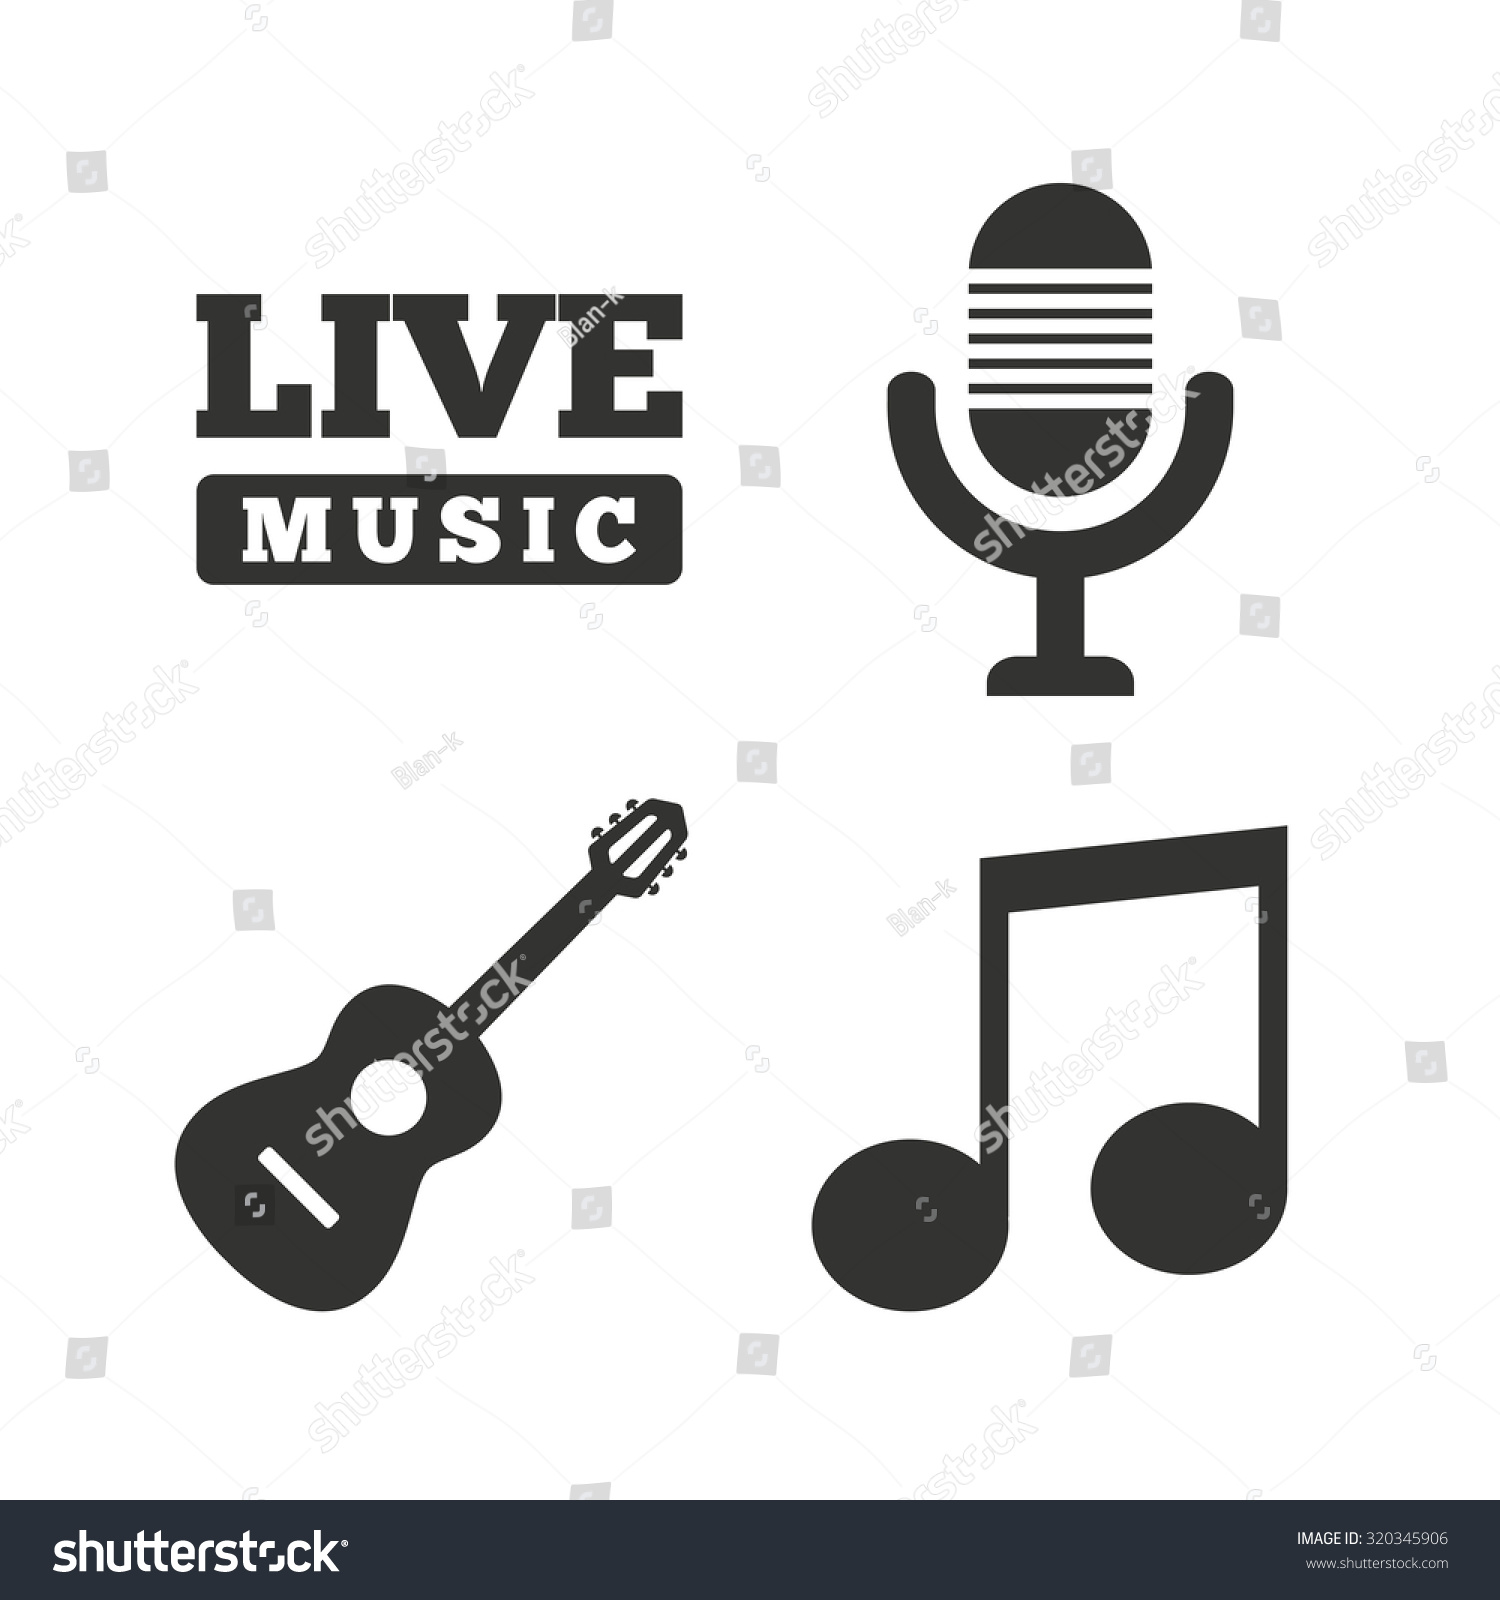 Musical elements icons microphone live music stock vector musical elements icons microphone and live music symbols music note and acoustic guitar signs biocorpaavc